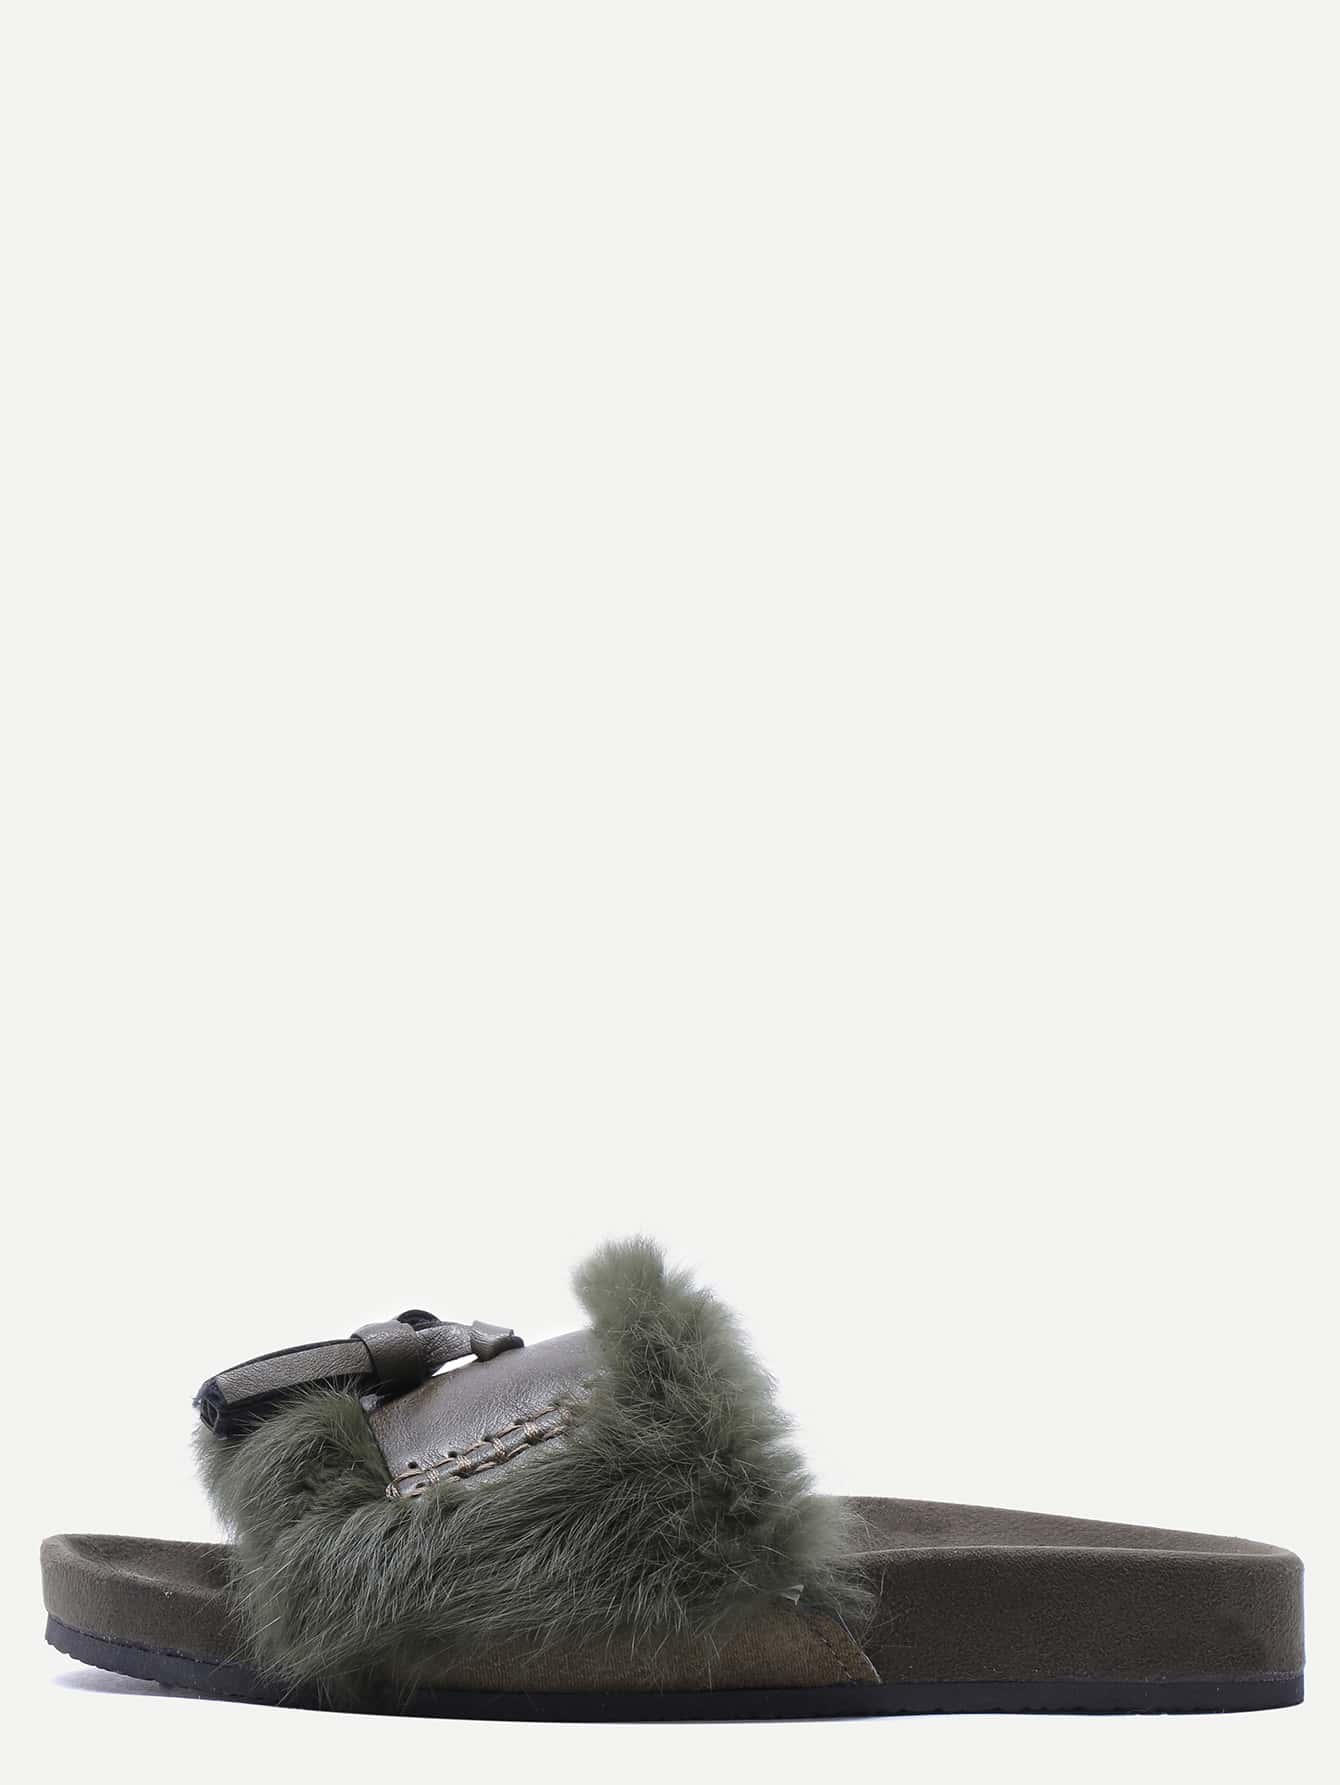 Green Faux Fur Peep Toe Casual Sandals.